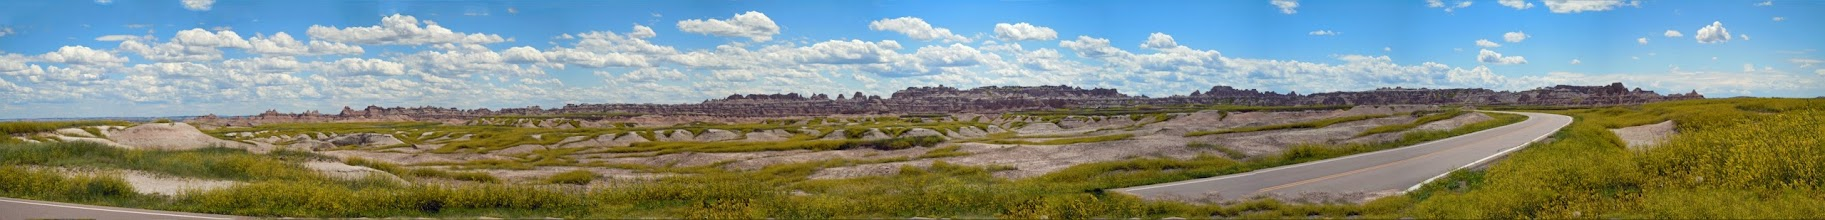 Photo: Panoramic view from the North East entrance to the Badlands National Park